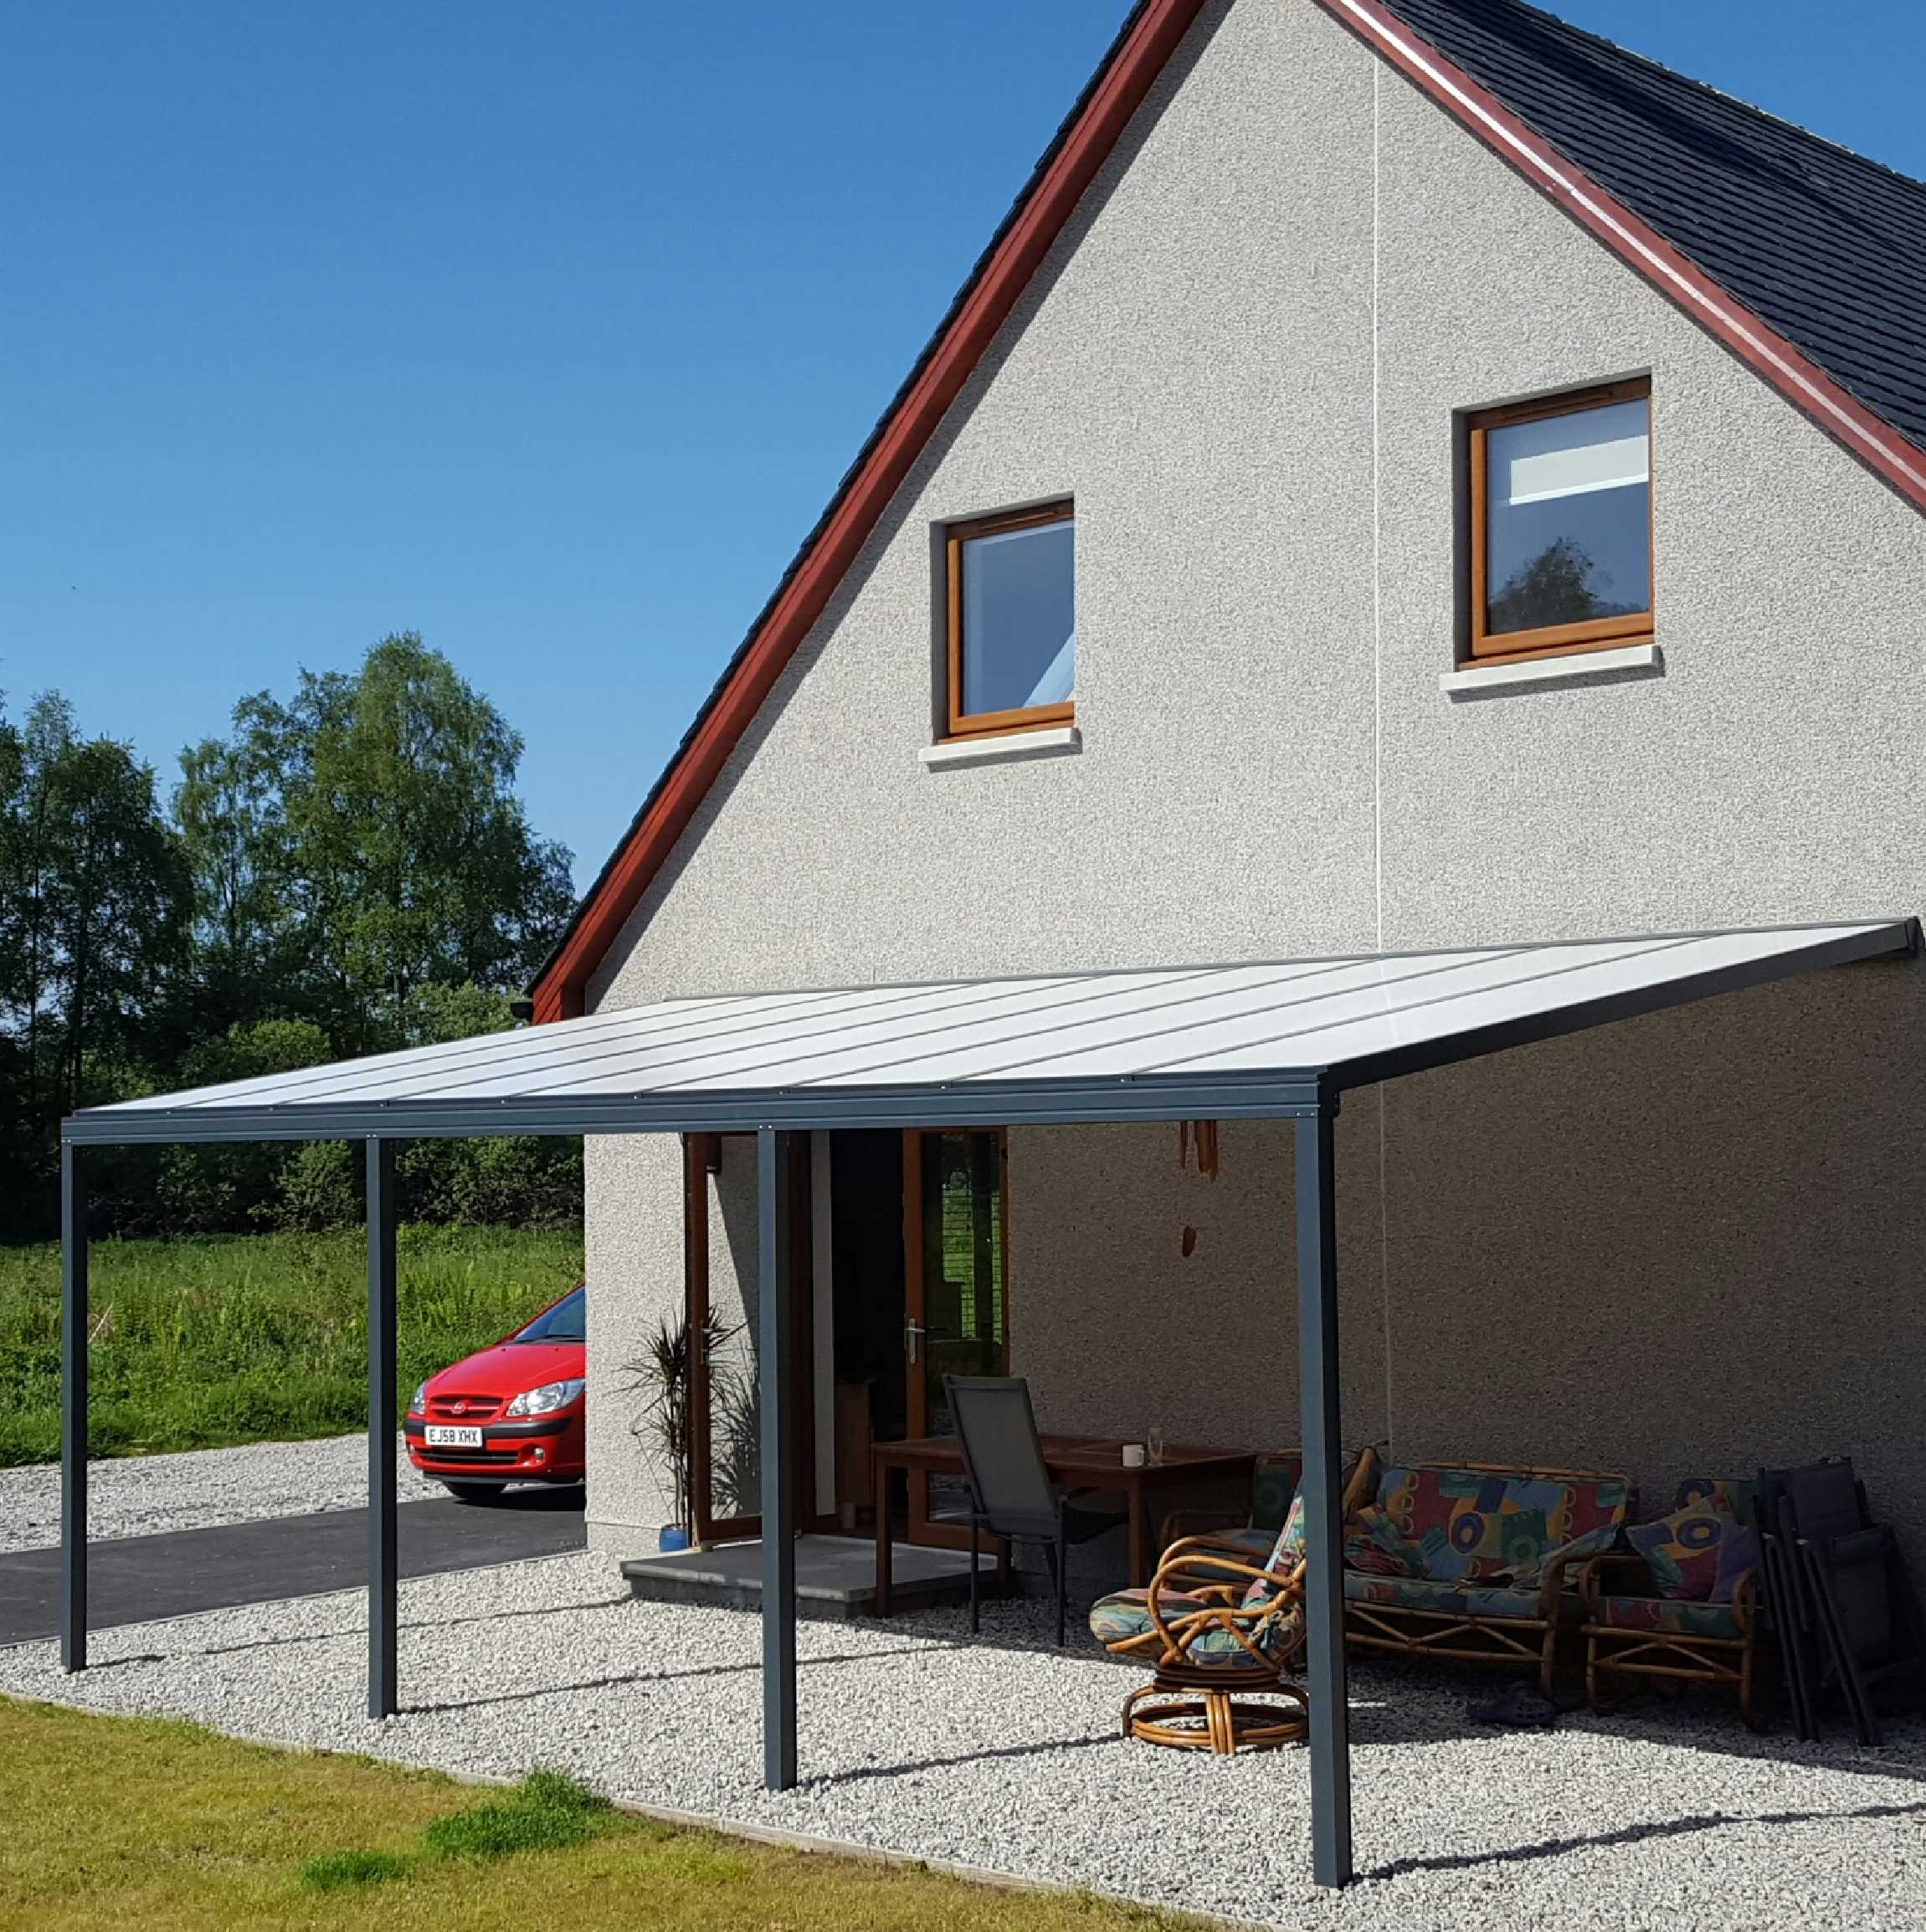 Great selection of Omega Smart Lean-To Canopy, Anthracite Grey, 16mm Polycarbonate Glazing - 12.0m (W) x 1.5m (P), (5) Supporting Posts